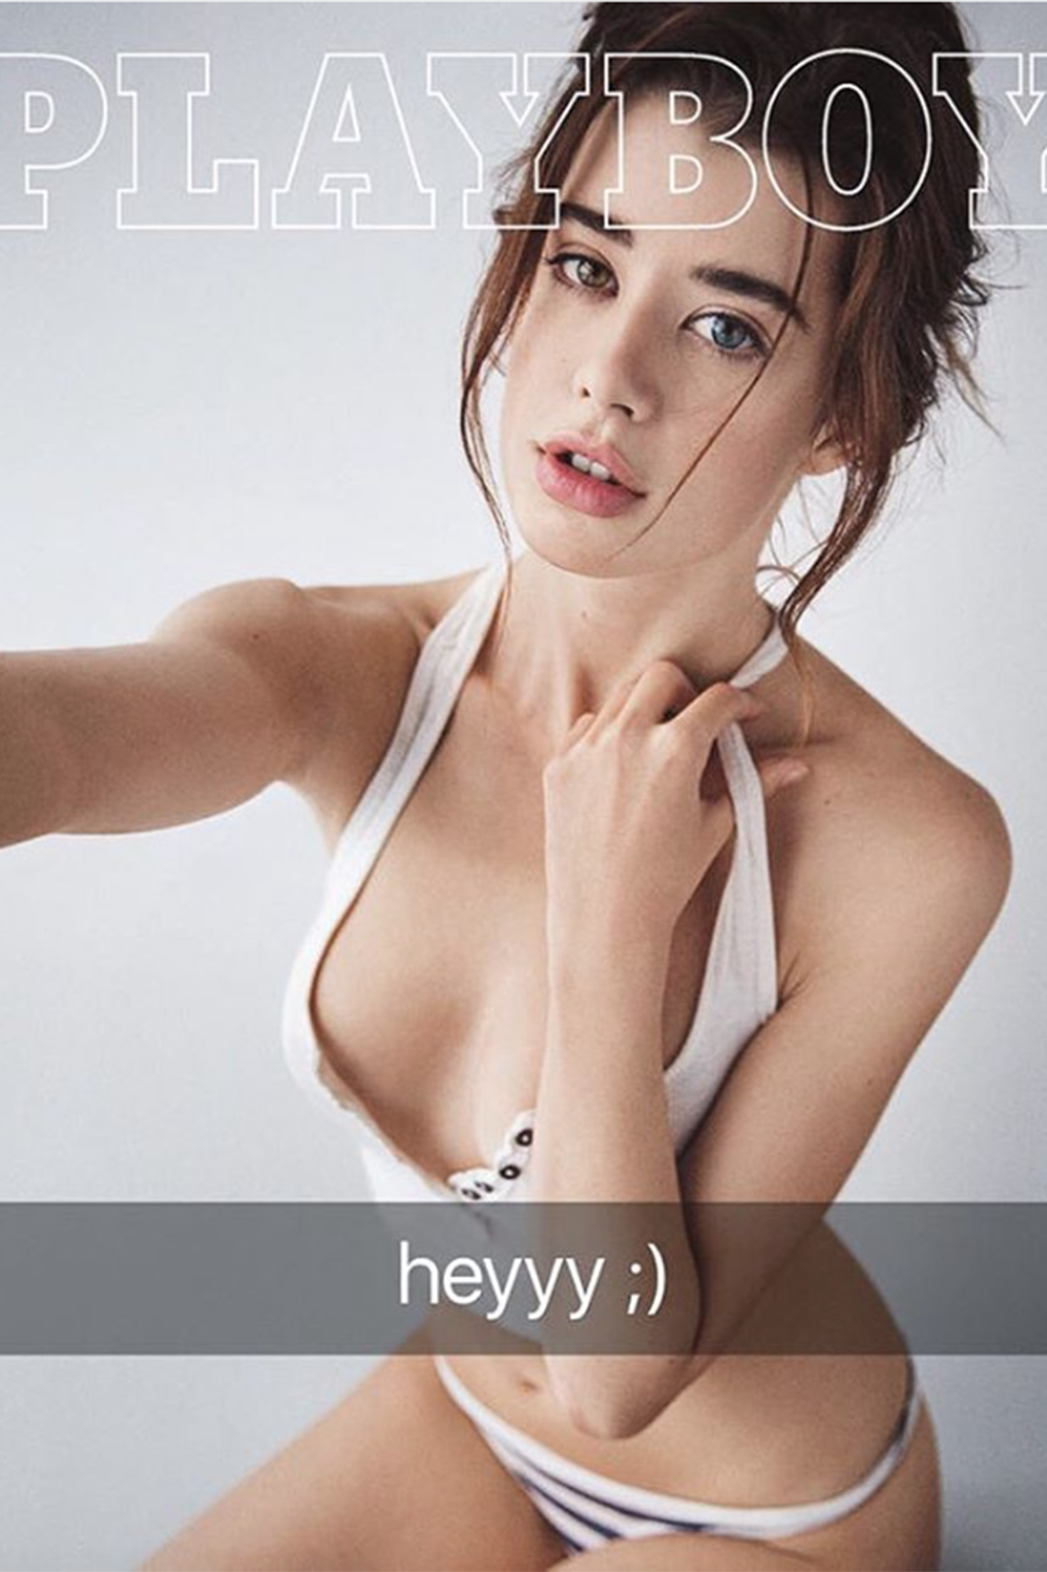 Playboys Non-Nude Issue Starring Sarah McDaniel, Dree